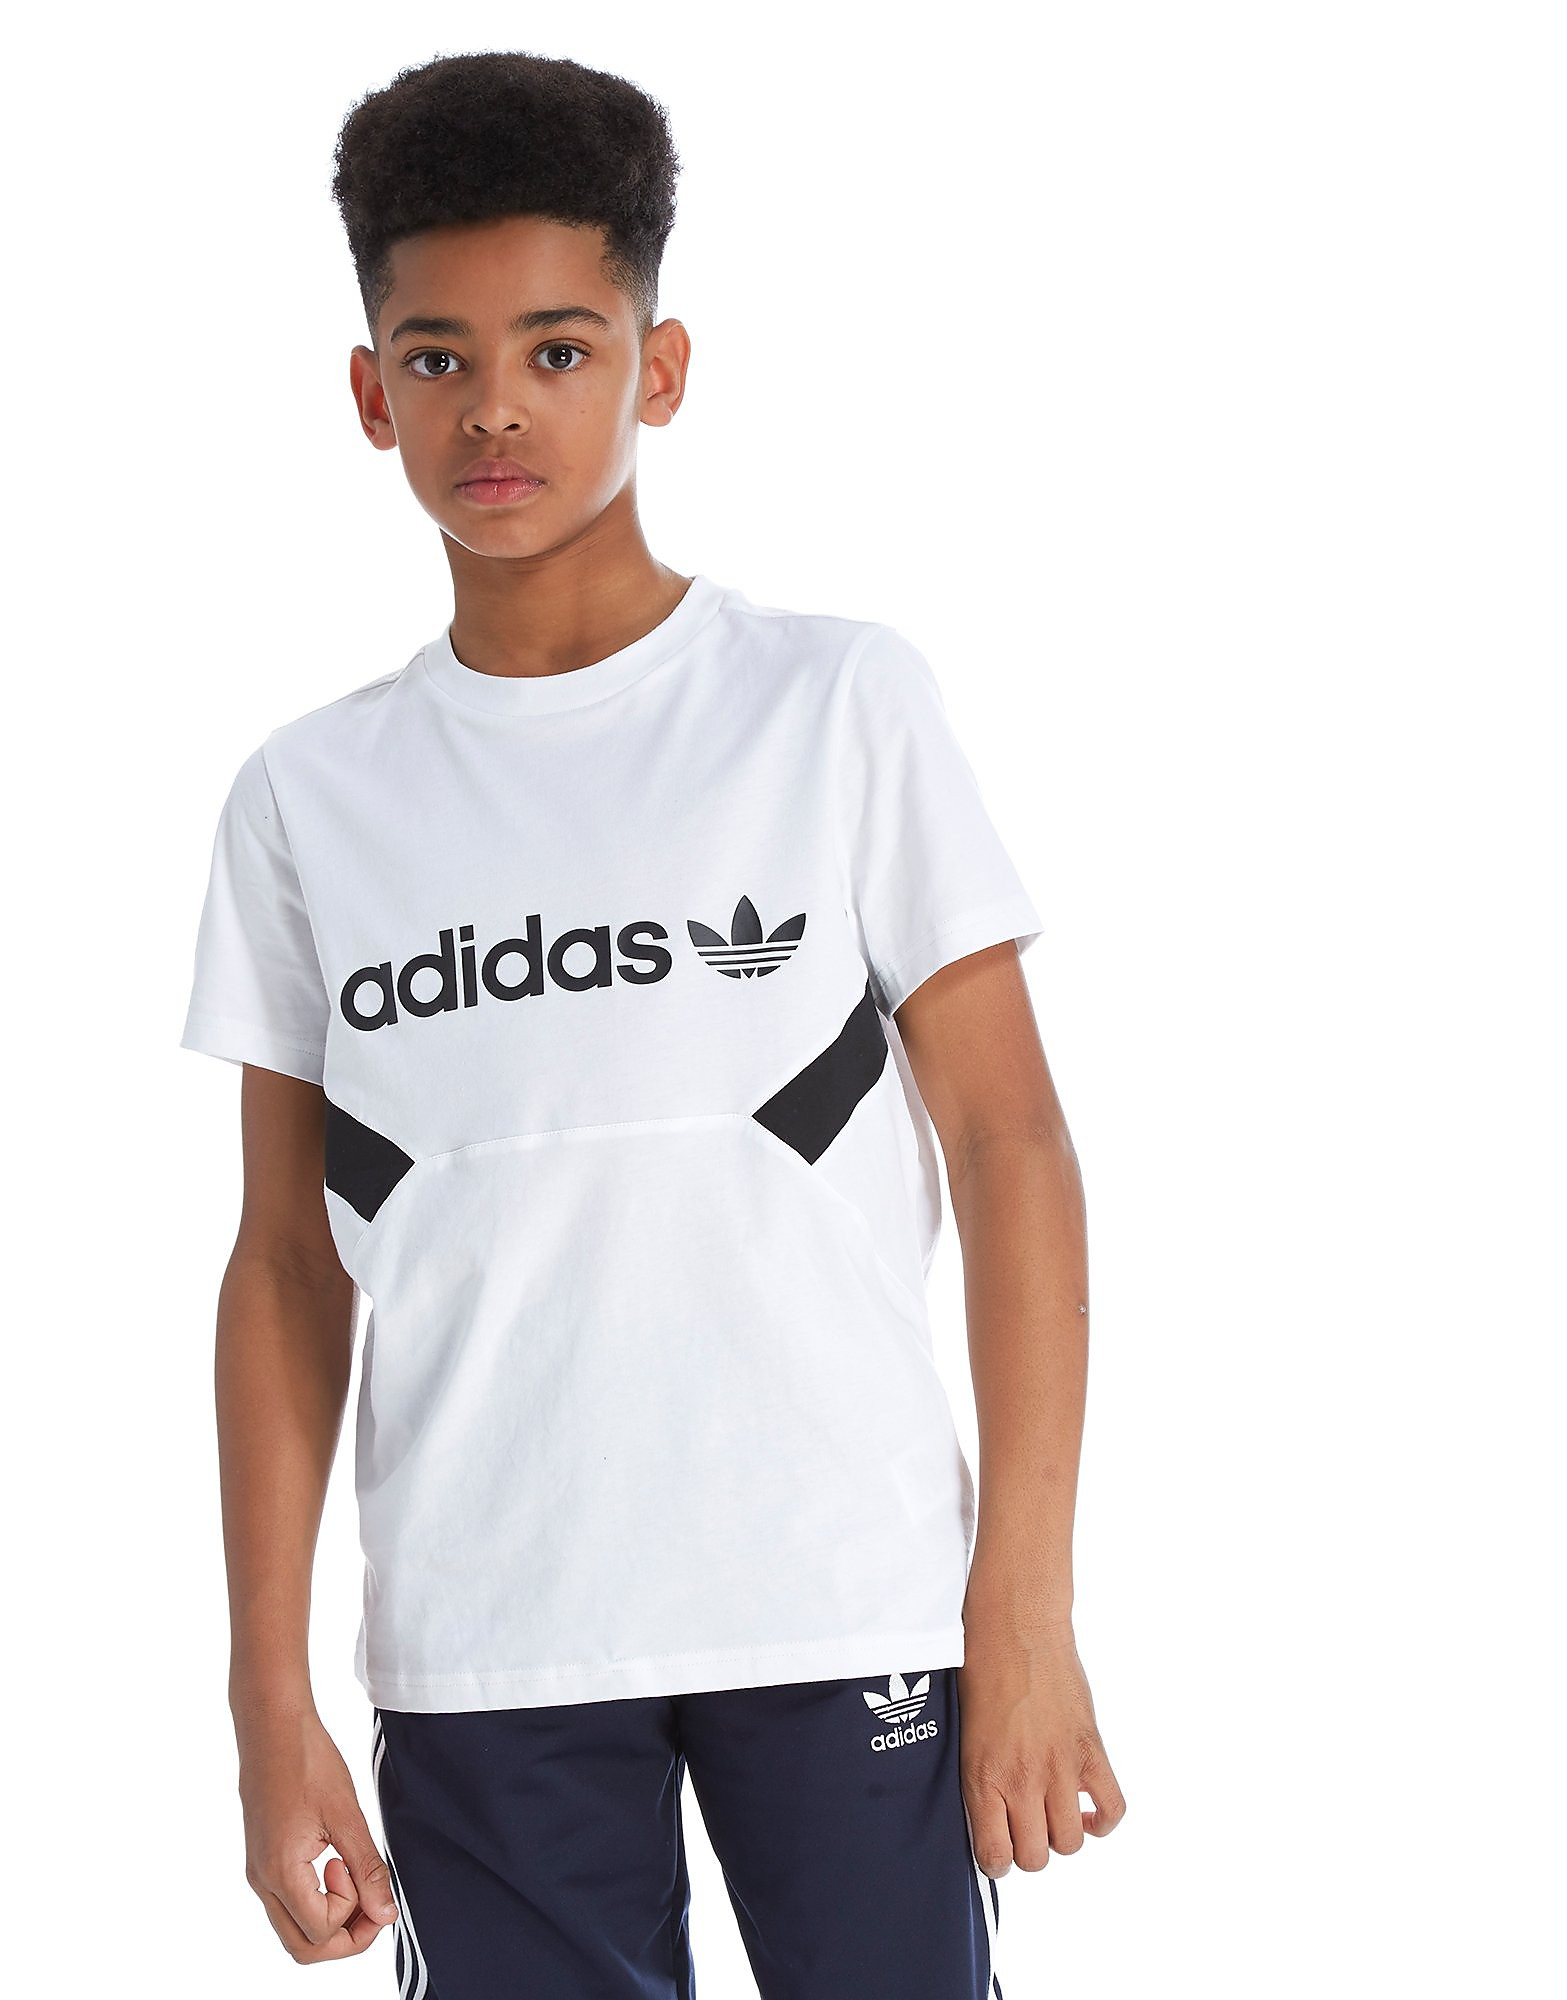 adidas Originals Trefoil Series T-Shirt Junior